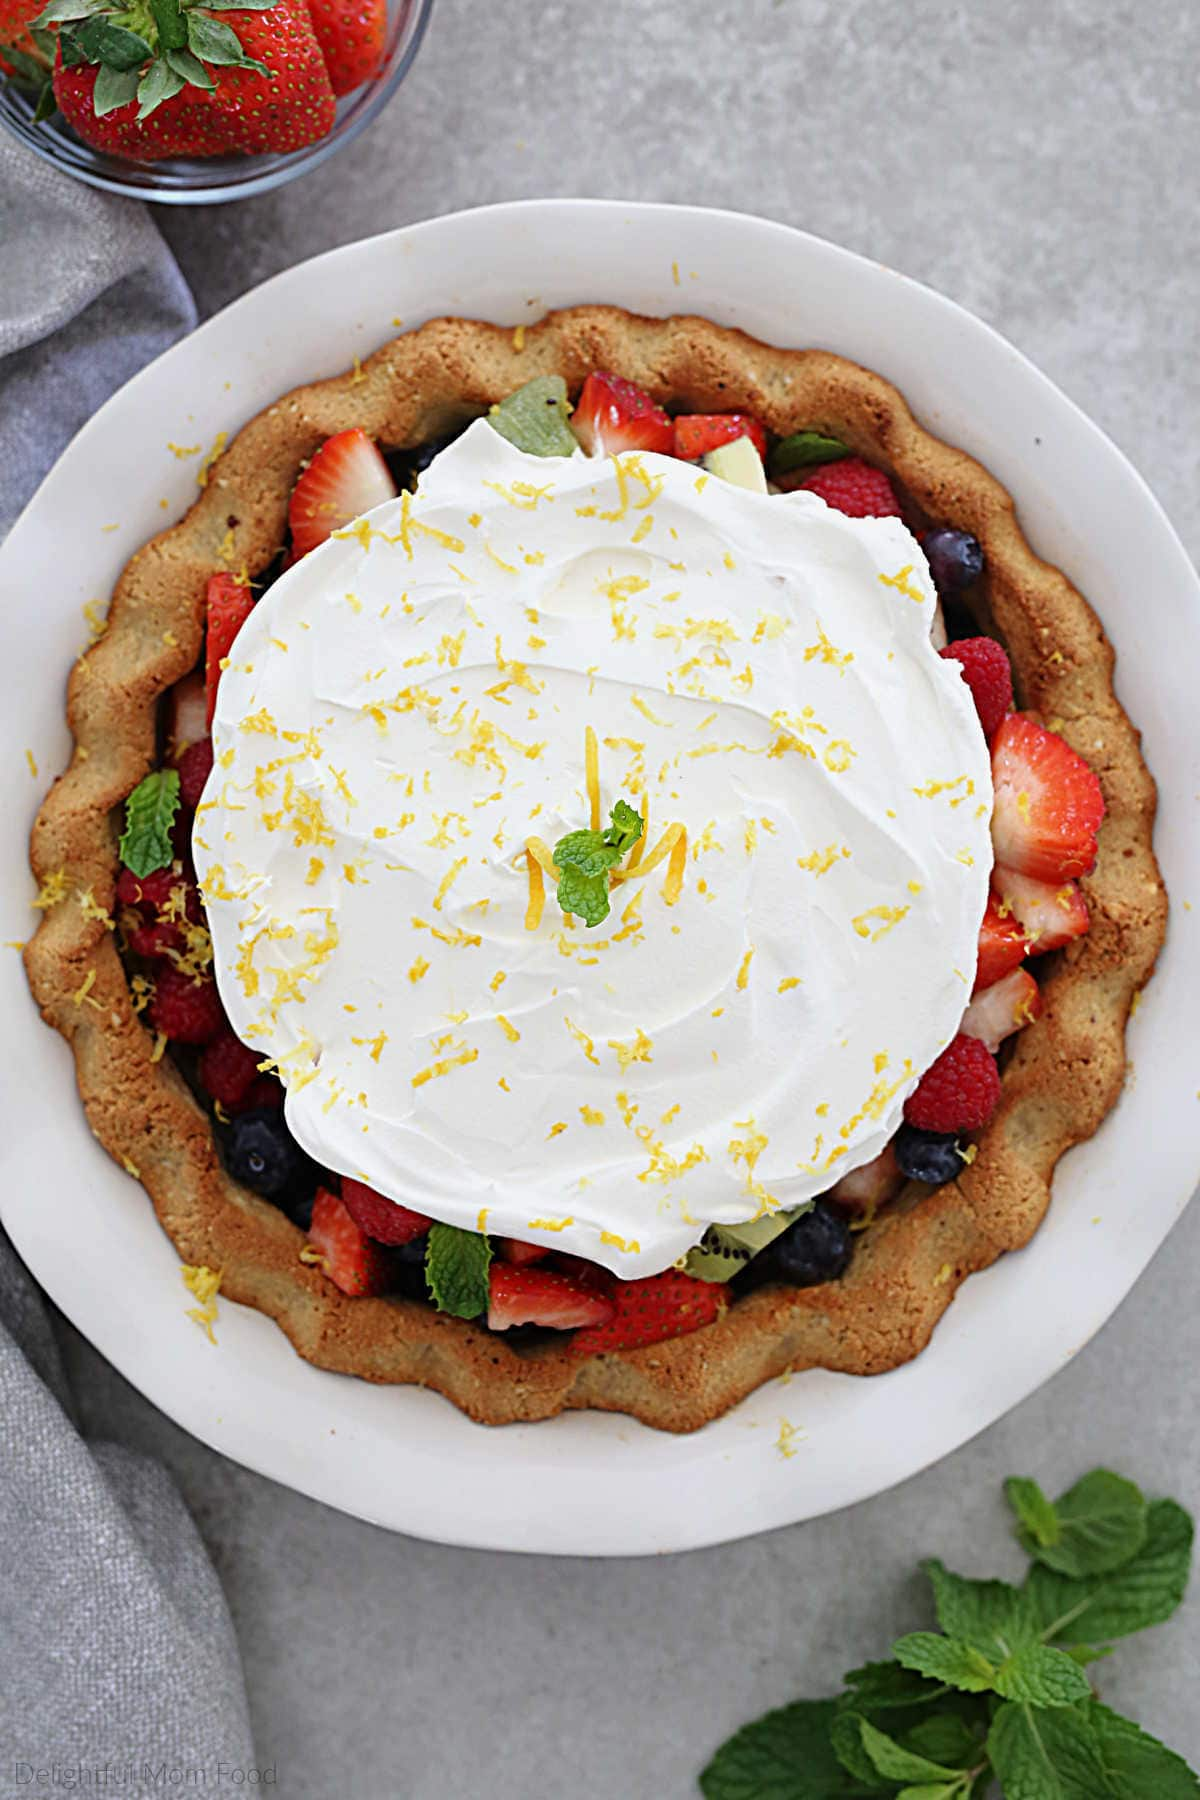 paleo pie crust filled with fresh fruit and topped with whipped cream dairy-free topping